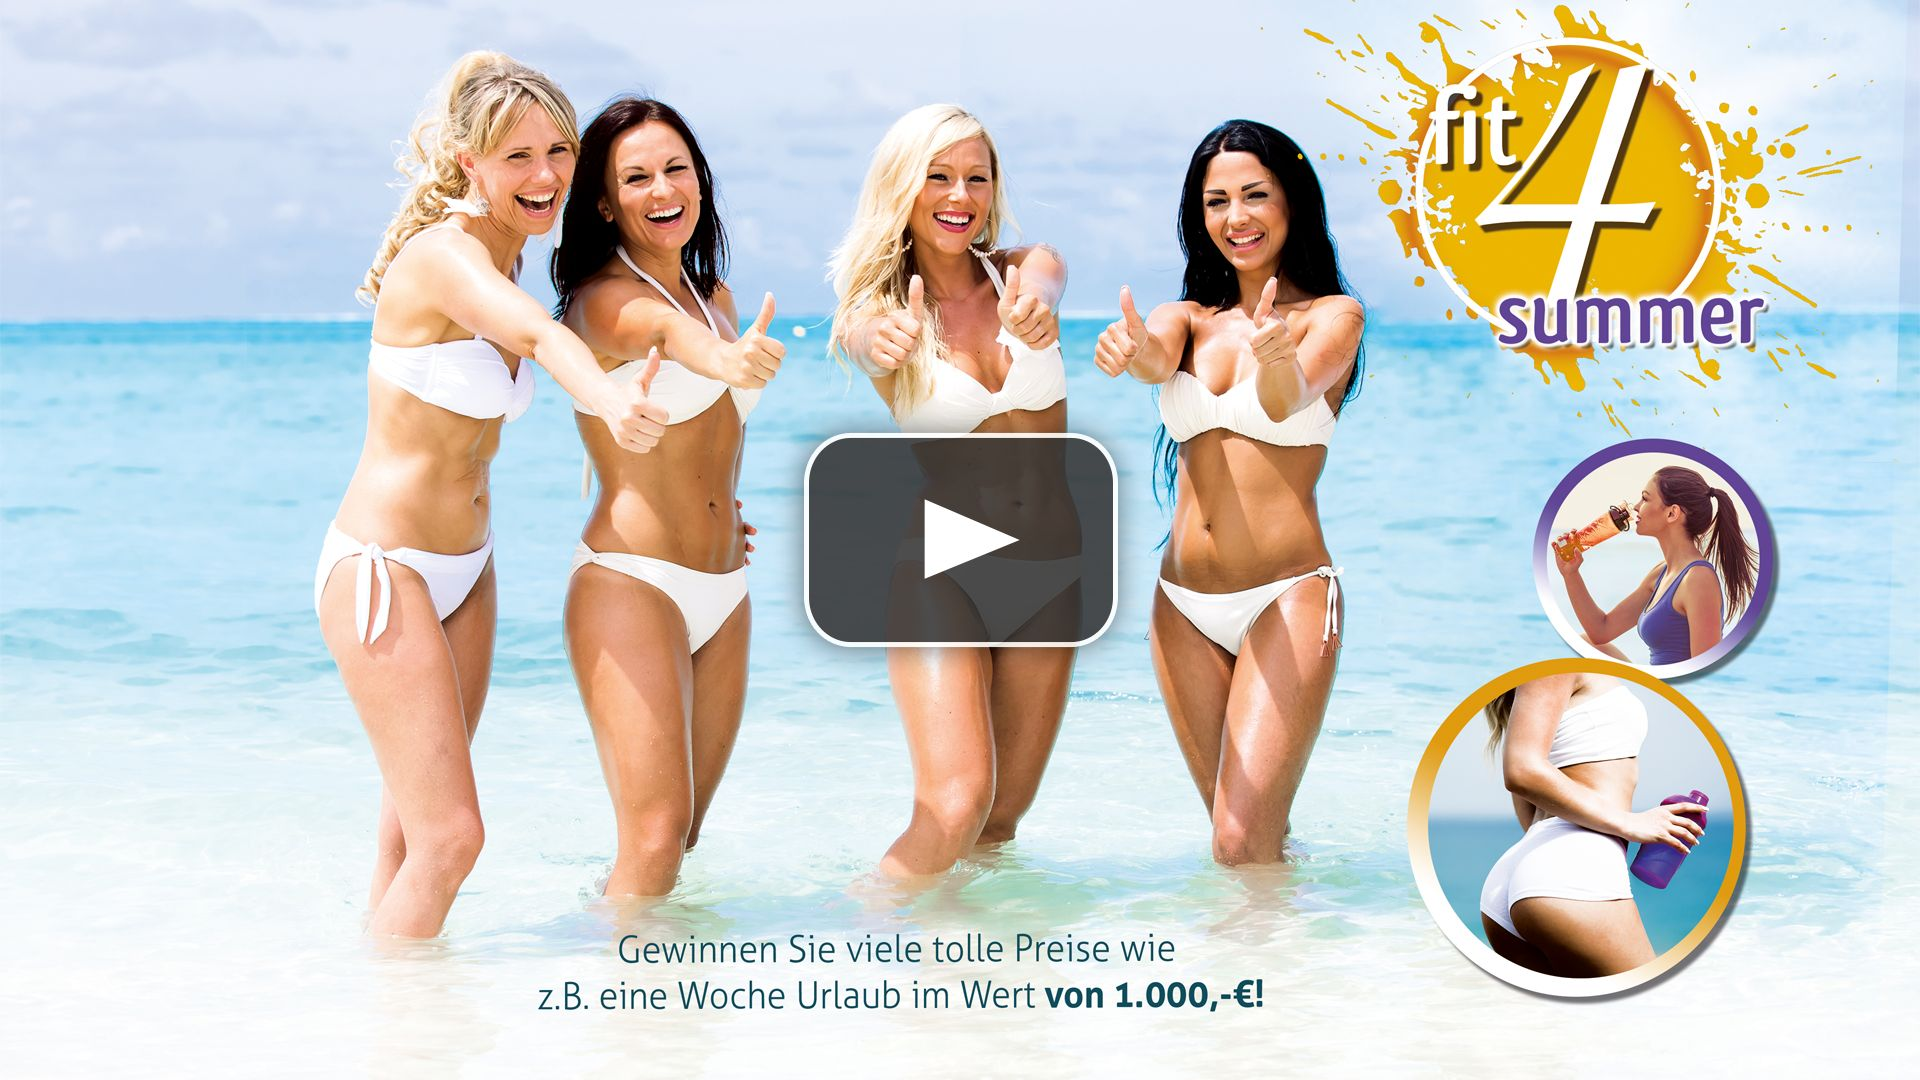 FIVE_Sommerkampagne_2019_Werbe-Video_Startbild